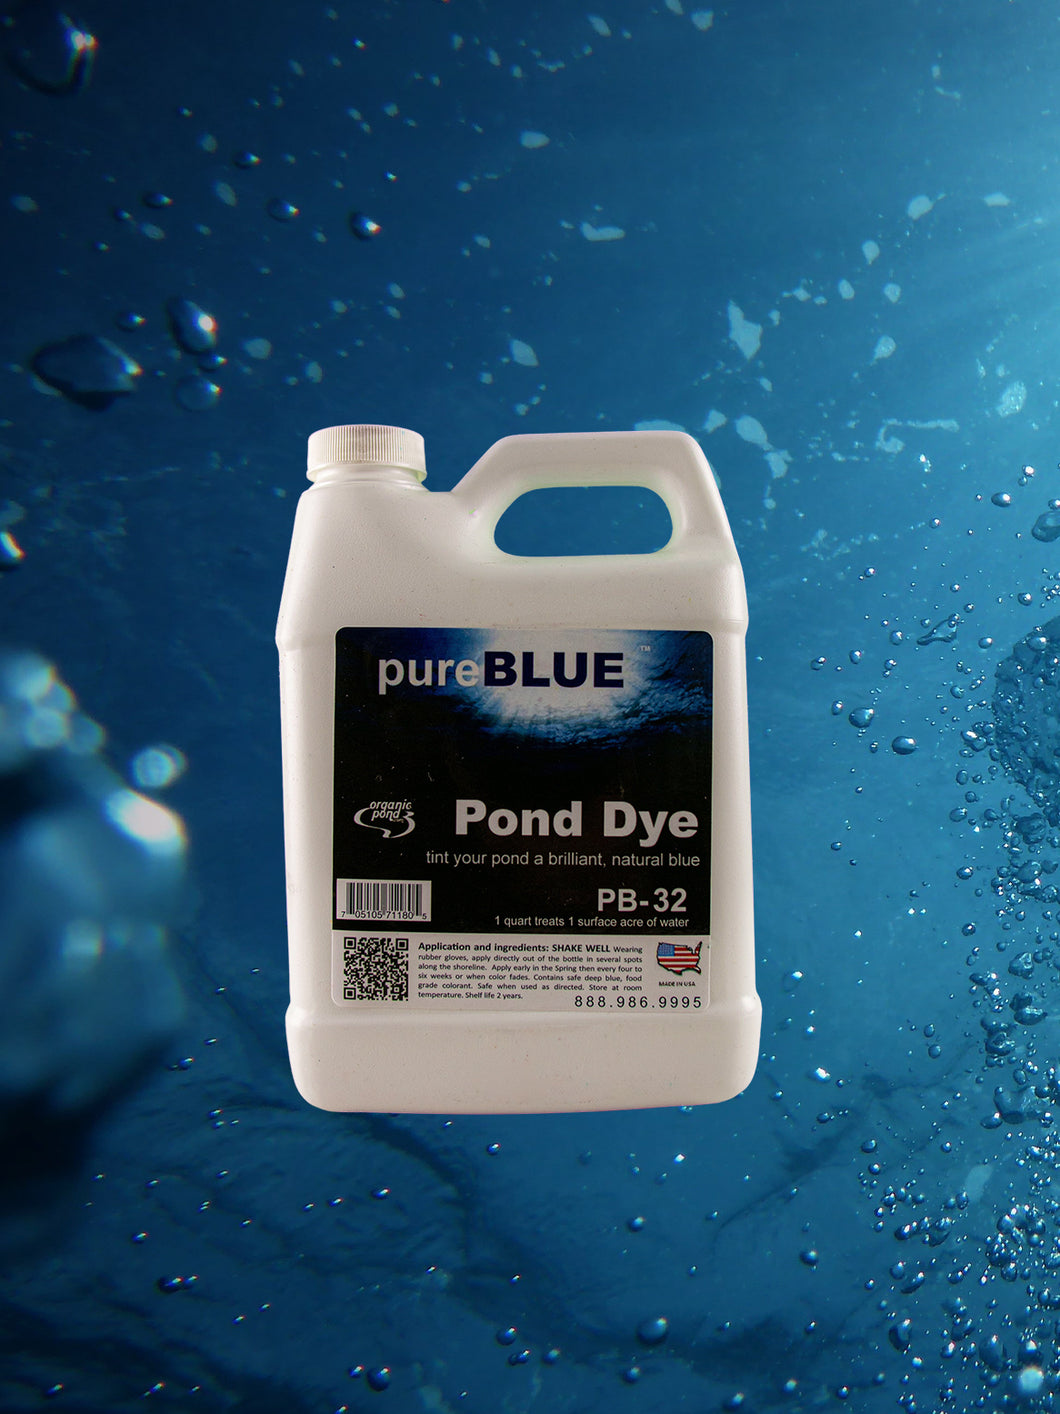 pureBLUE™ Pond Dye Super-Concentrated Quarts